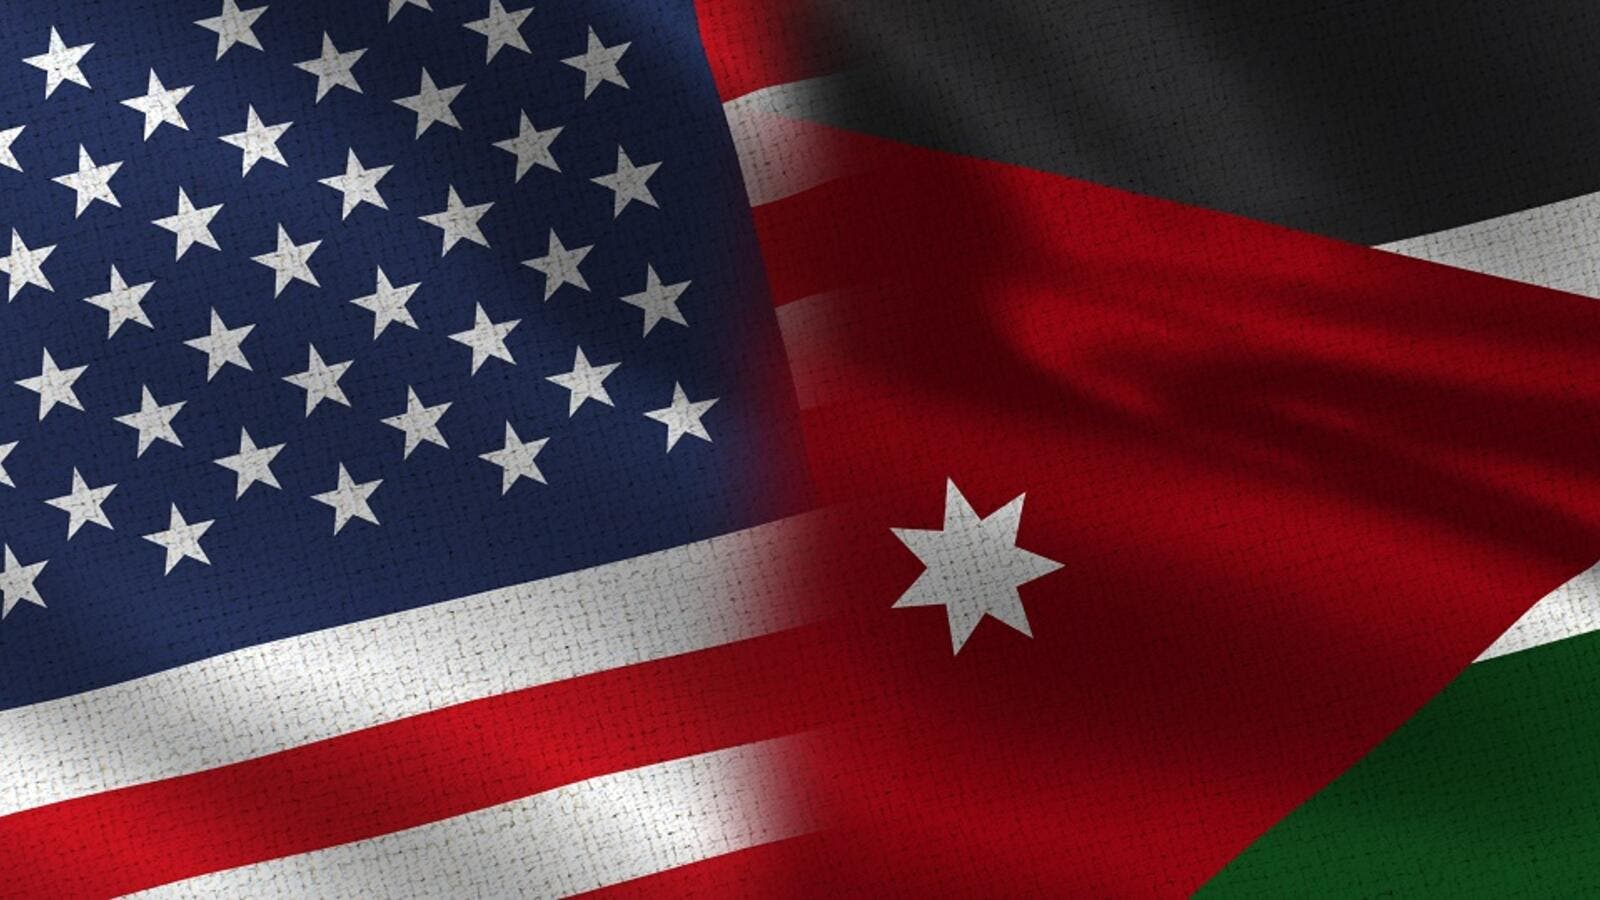 Jordan and the US on Tuesday signed three agreements.